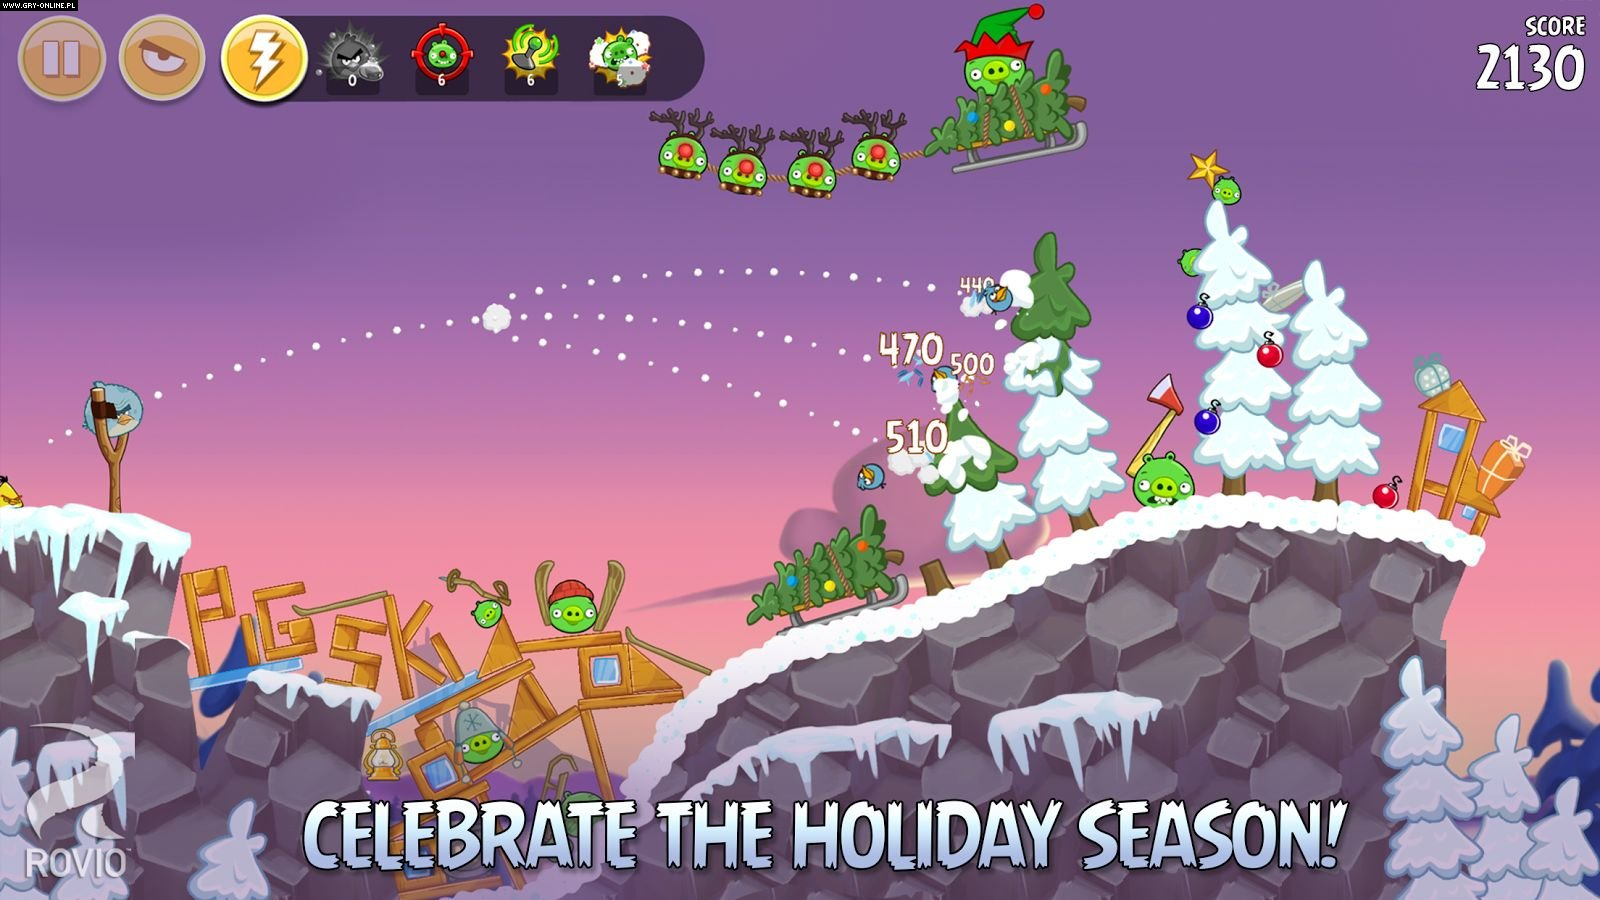 Angry Birds Seasons PC, WP, AND, iOS Gry Screen 4/4, Rovio Mobile